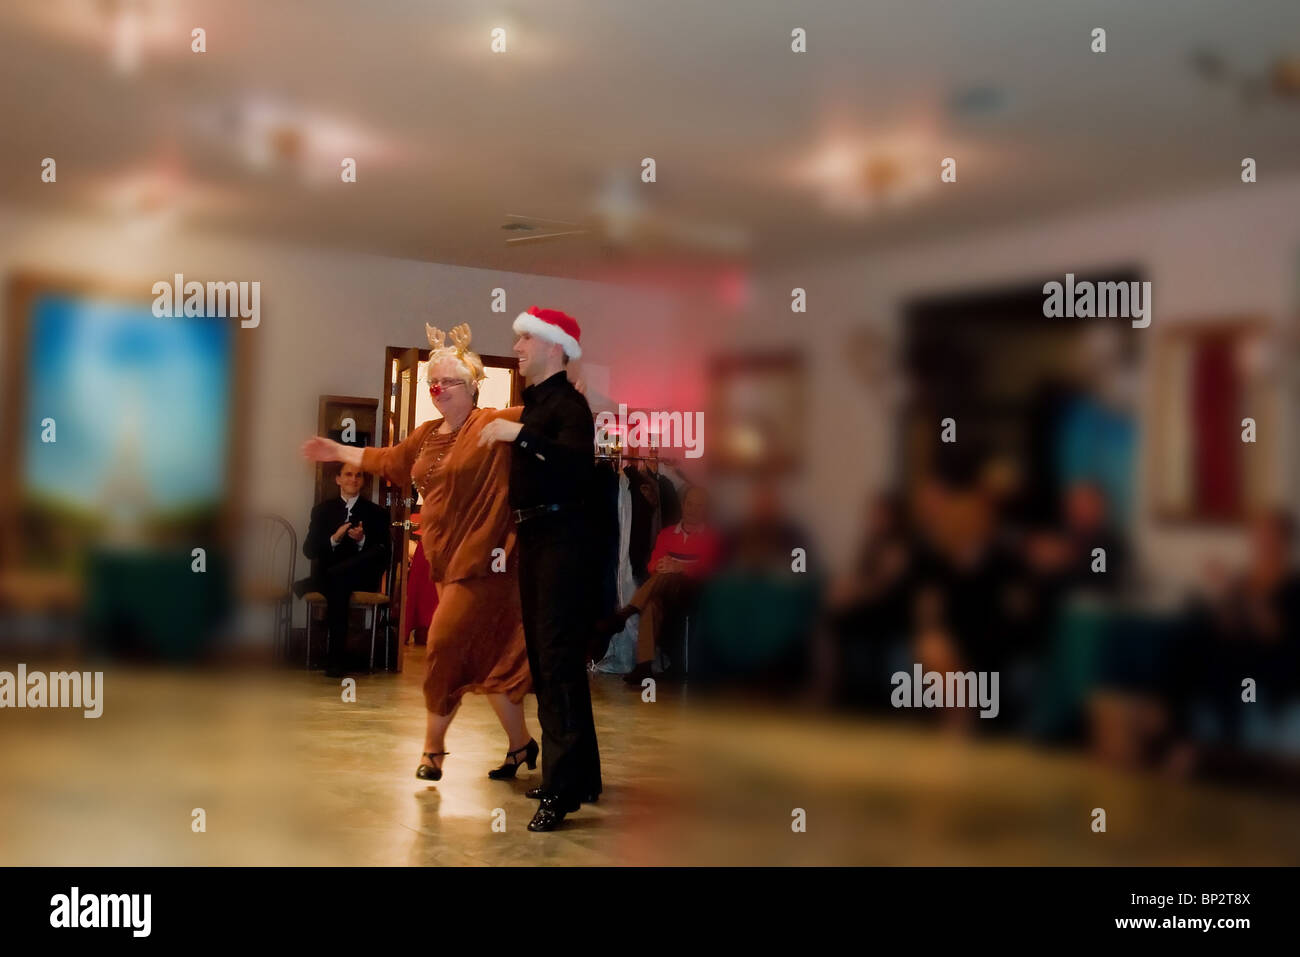 Senior citizen lady with Rudolph costume wearing a bright red nose, dances in a ballroom dance event. - Stock Image